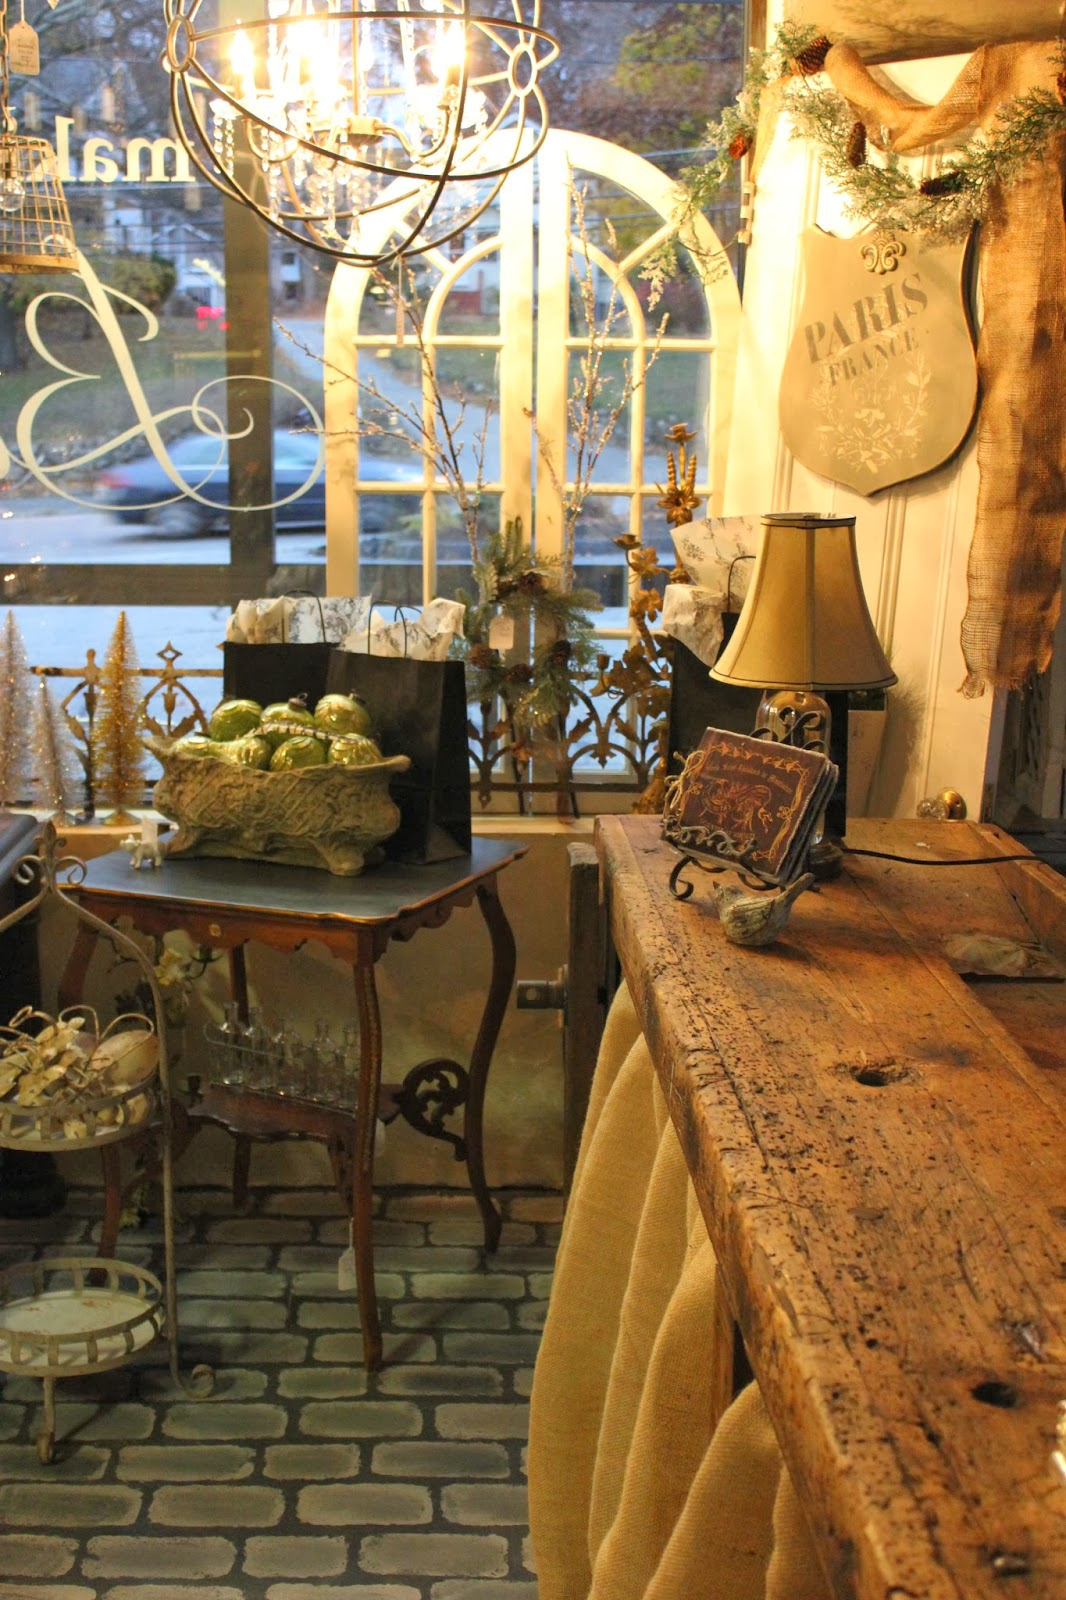 Maison Decor: Rustic French Home Accents in the shop